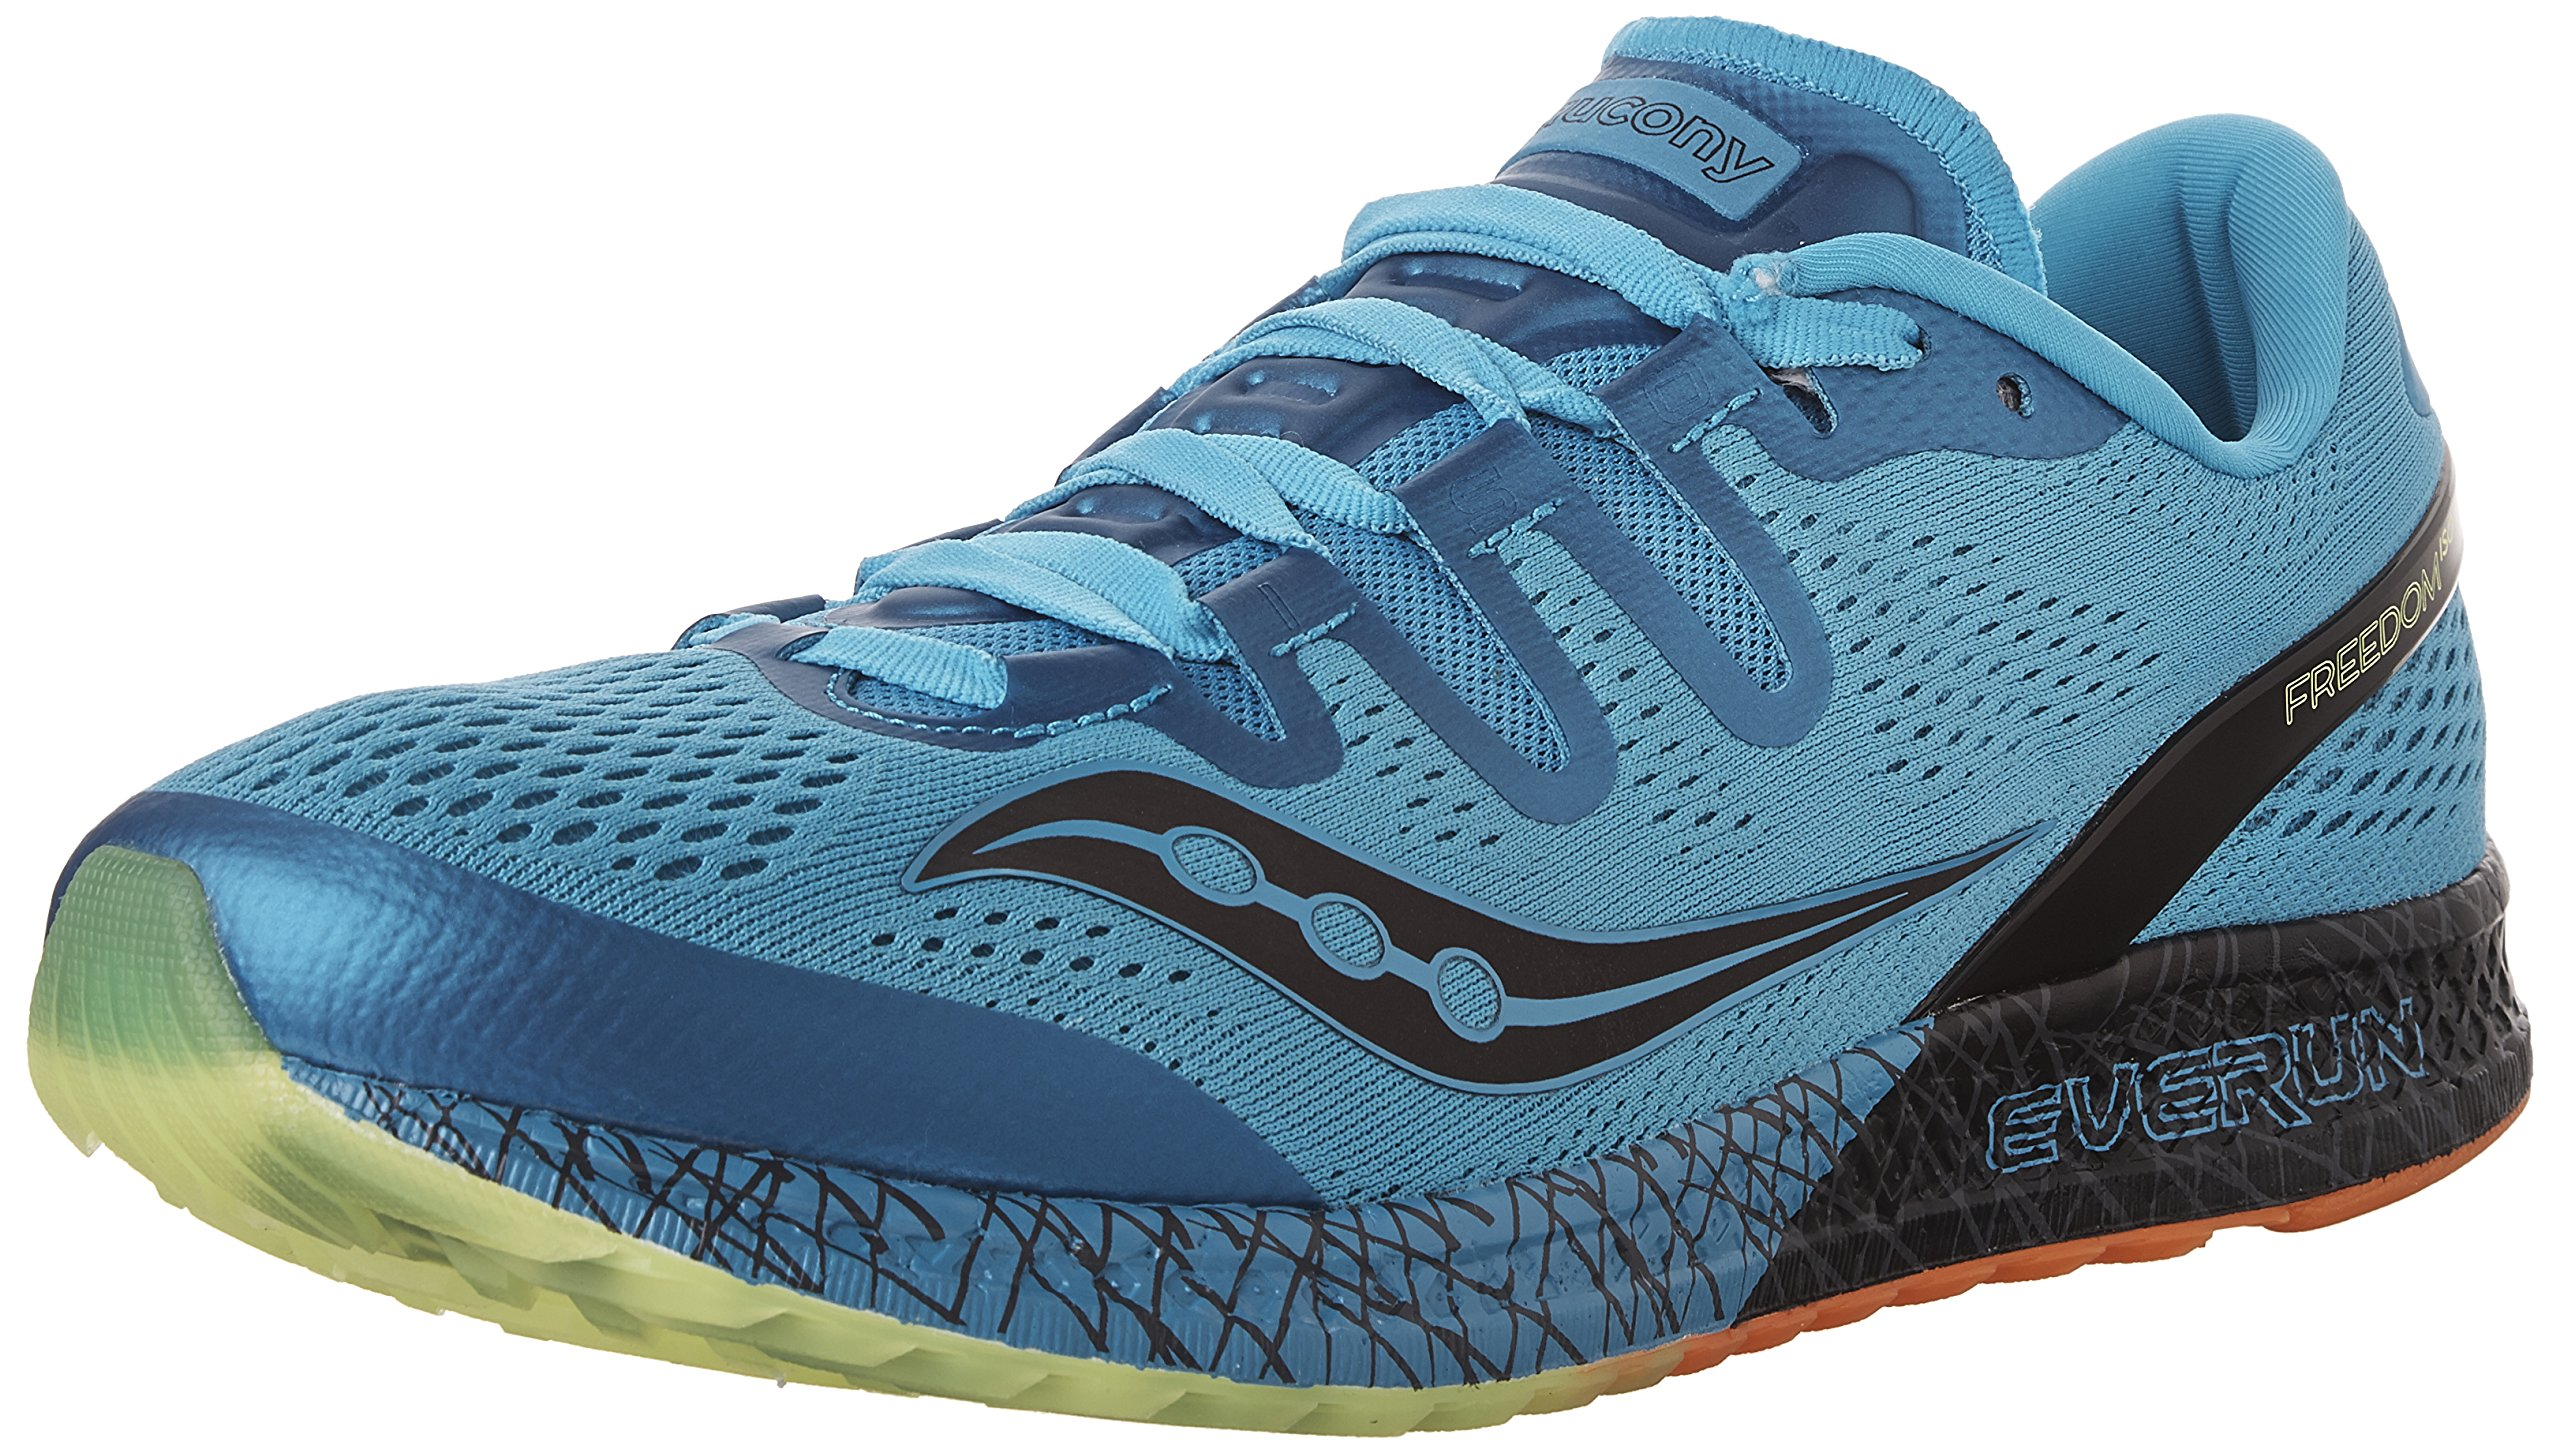 Saucony Men's Freedom ISO Running Shoe, Blue/Black/Citron, 10 M US by Saucony